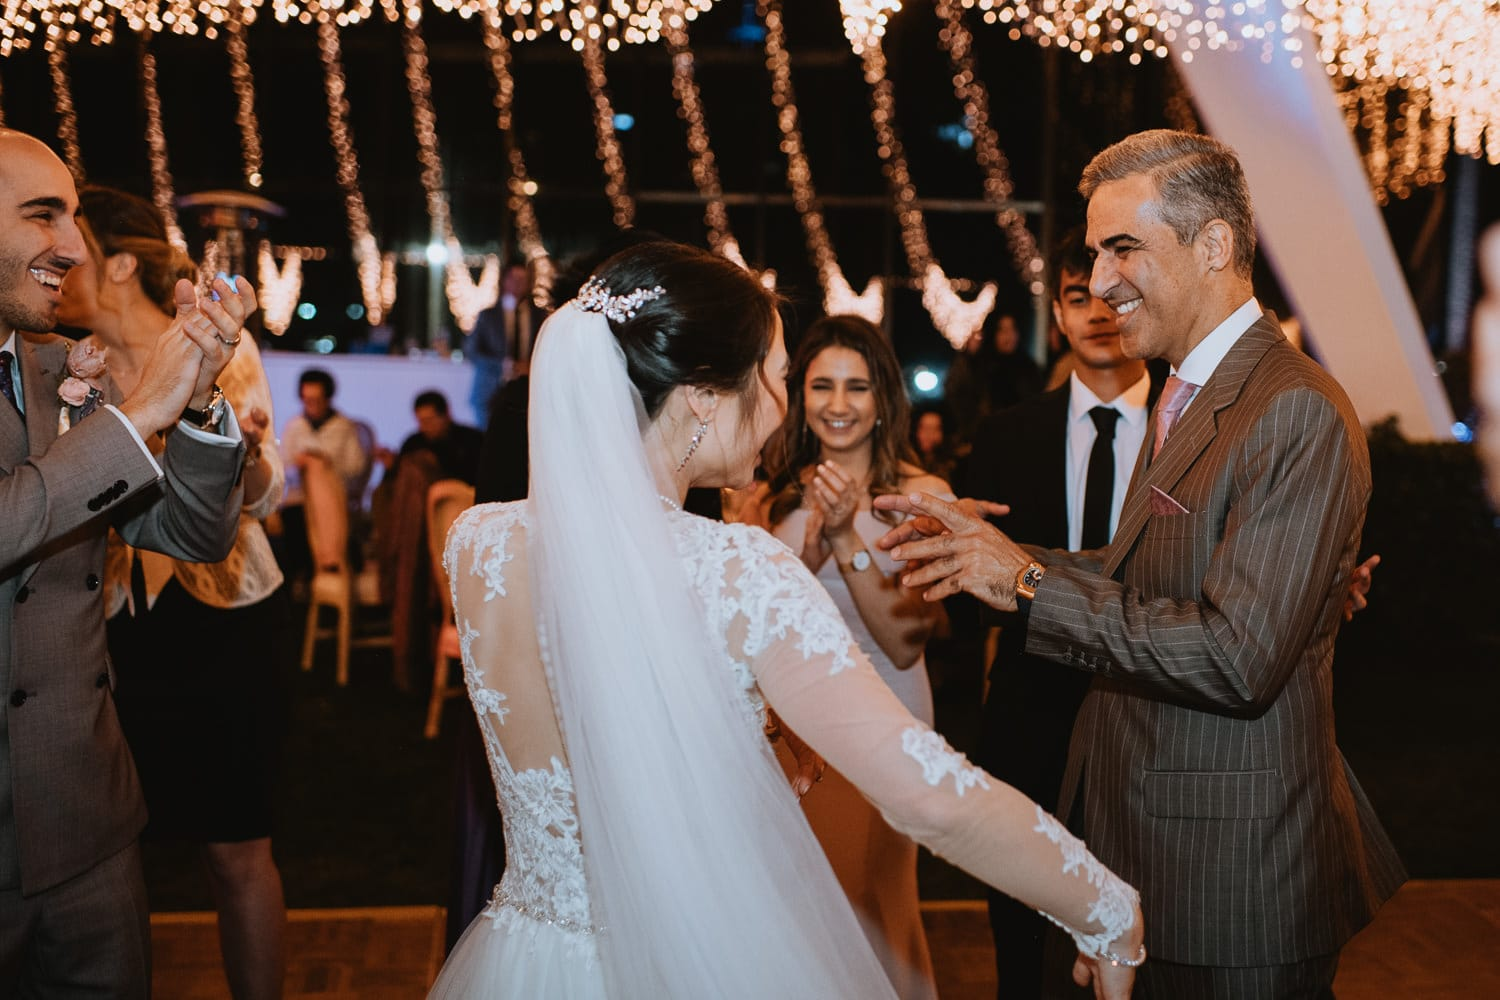 Outdoor Evening Wedding Reception Bride and father dance